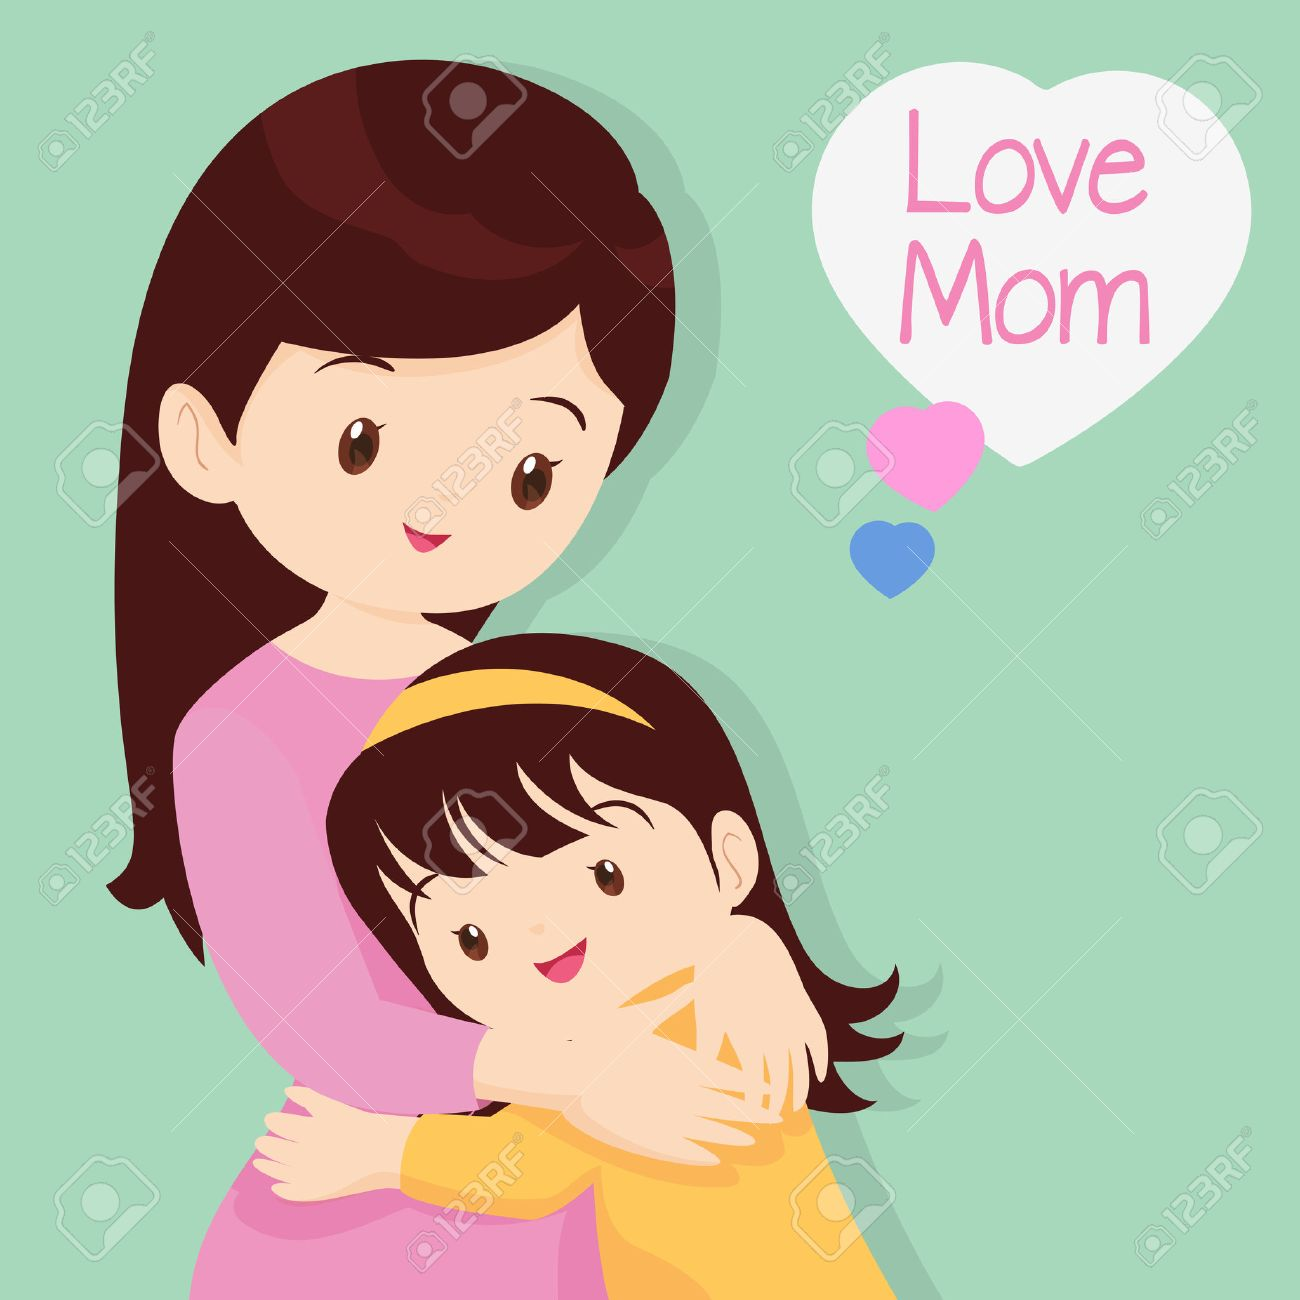 Mother's Day, Embracing, Love, Children of love,Daughter Hugging...